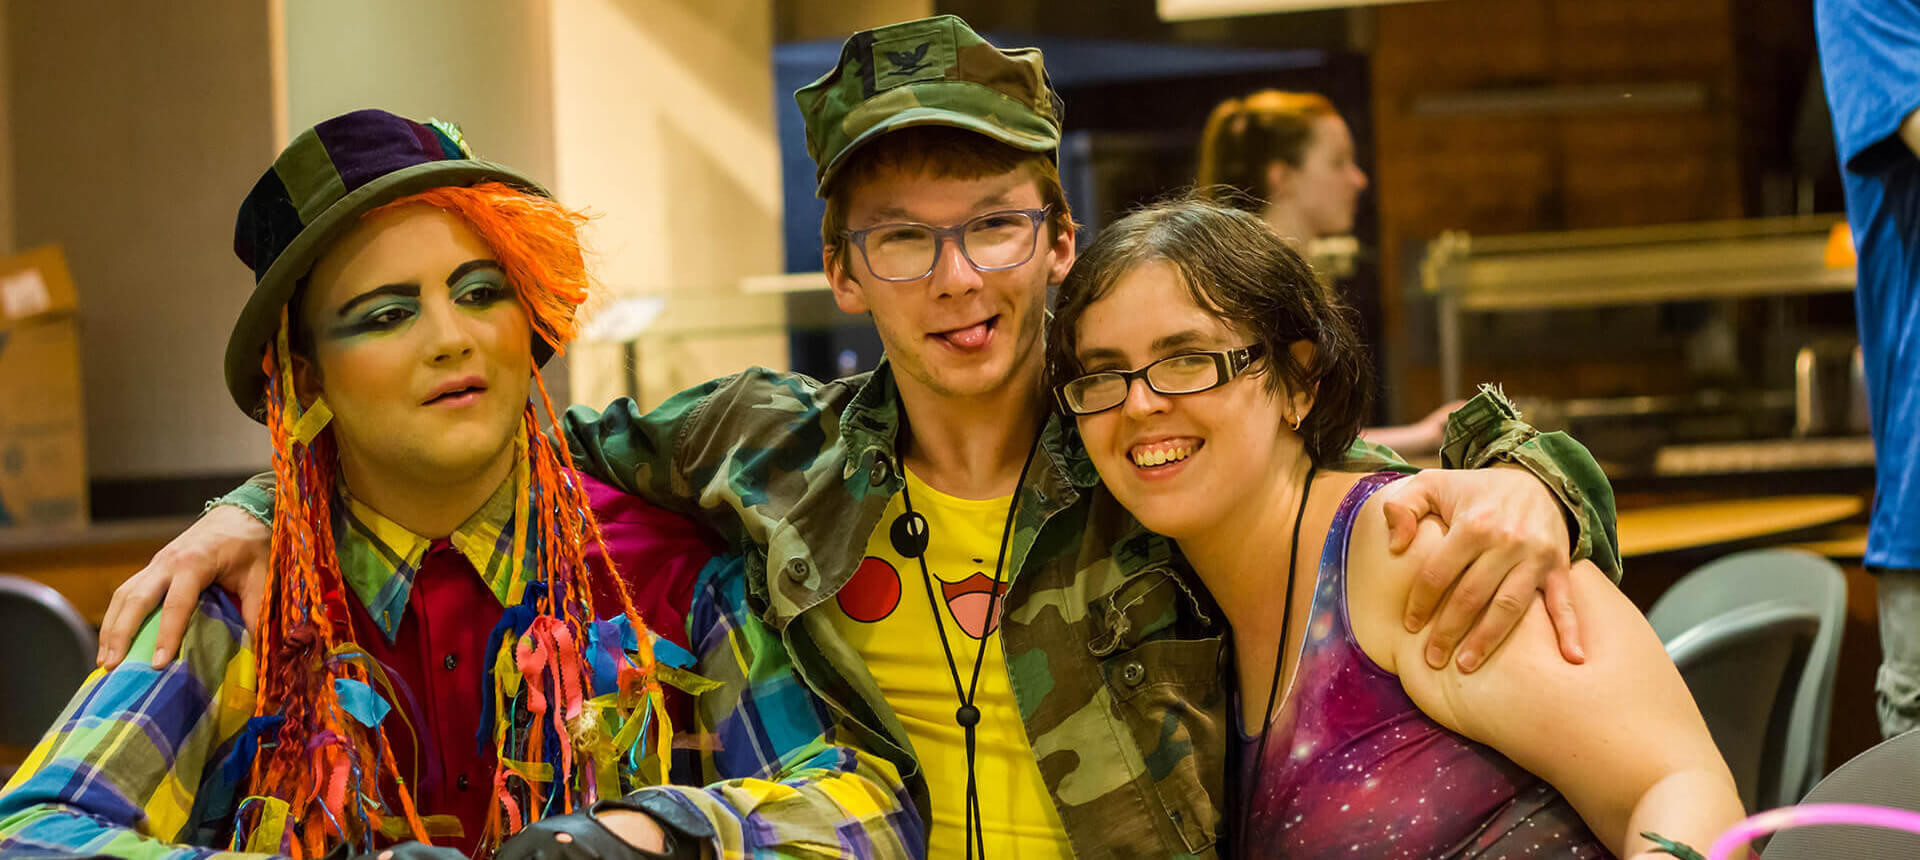 Young adults dressed in colorful costumes making funny faces